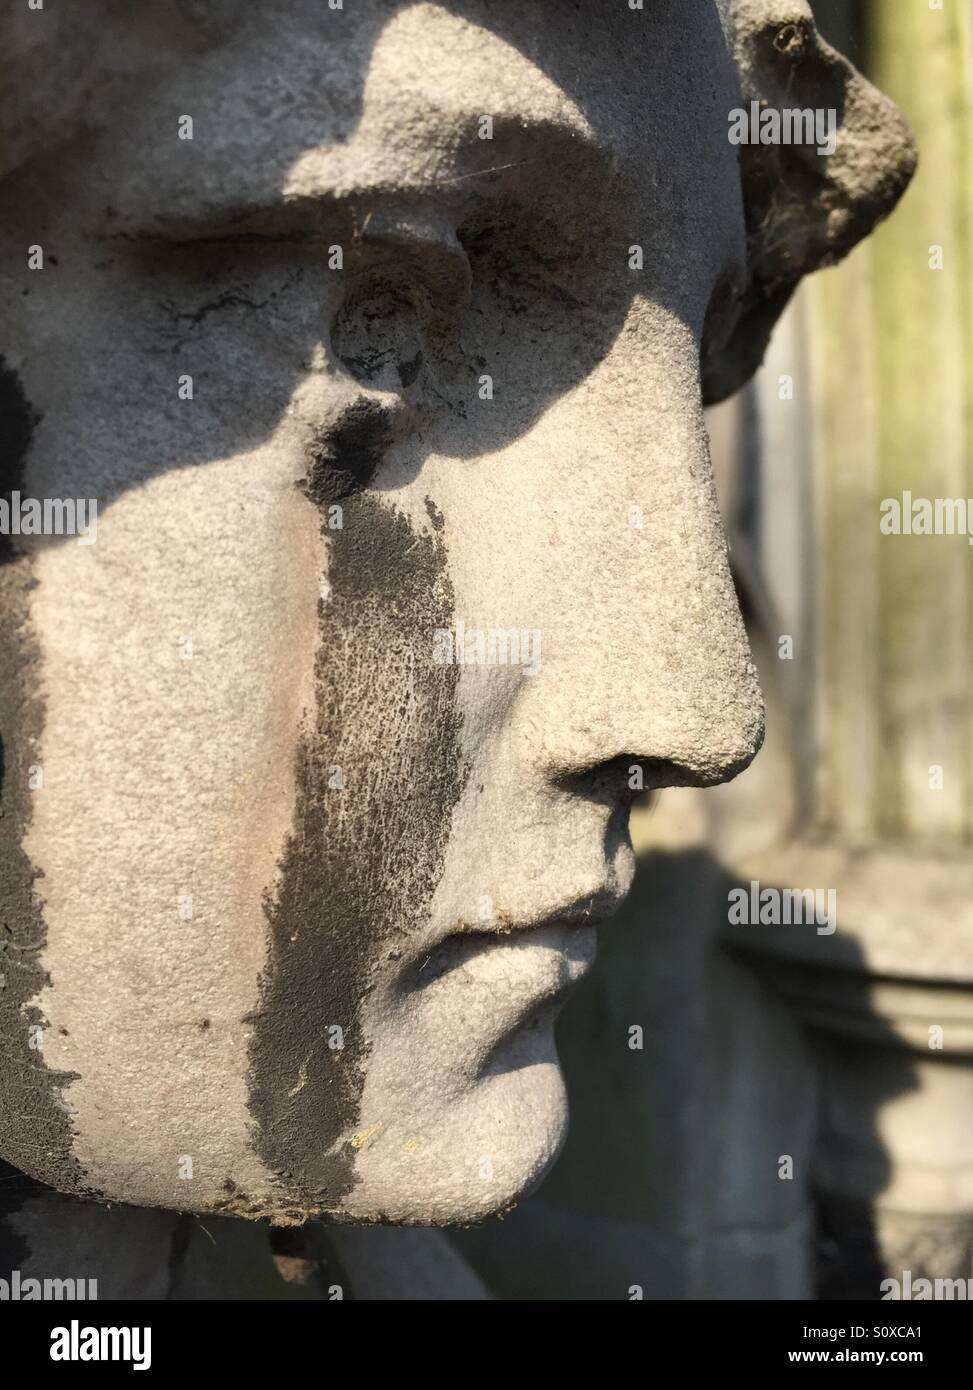 Tombstone sculpture with acid rain tears. Brompton cemetery, Kensington, London, England - Stock Image